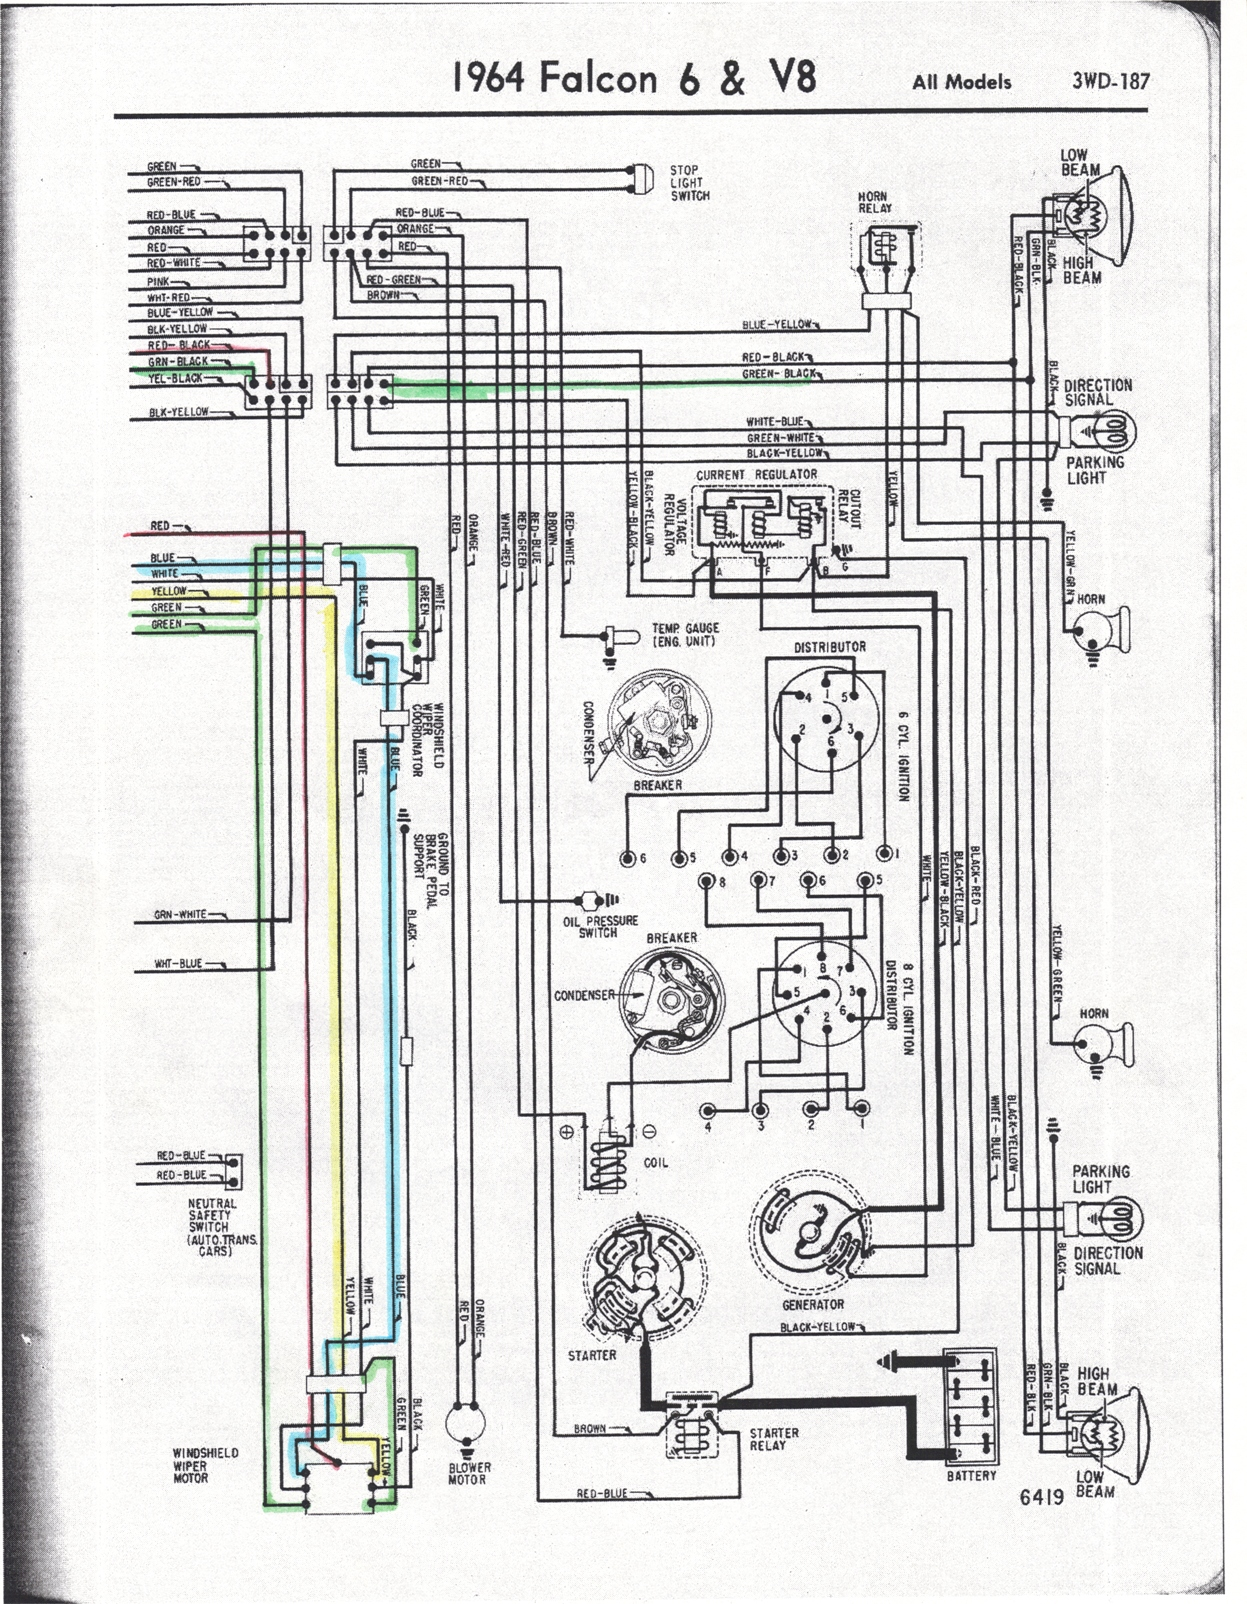 3 light switch wiring diagram john deere 140 lawn tractor way auto electrical related with